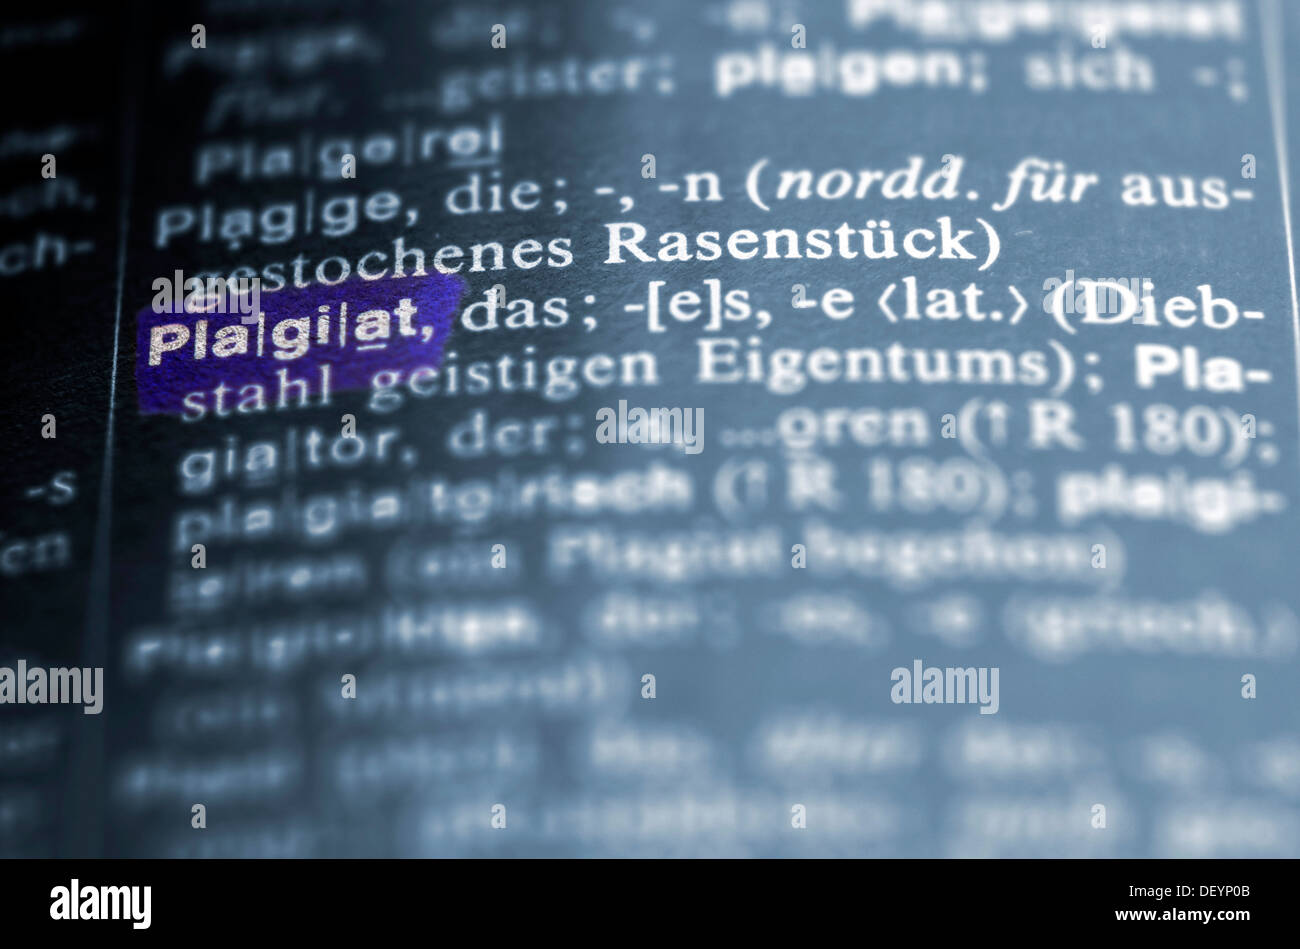 definition of plagiarism in a german dictionary, plagiat stock photo